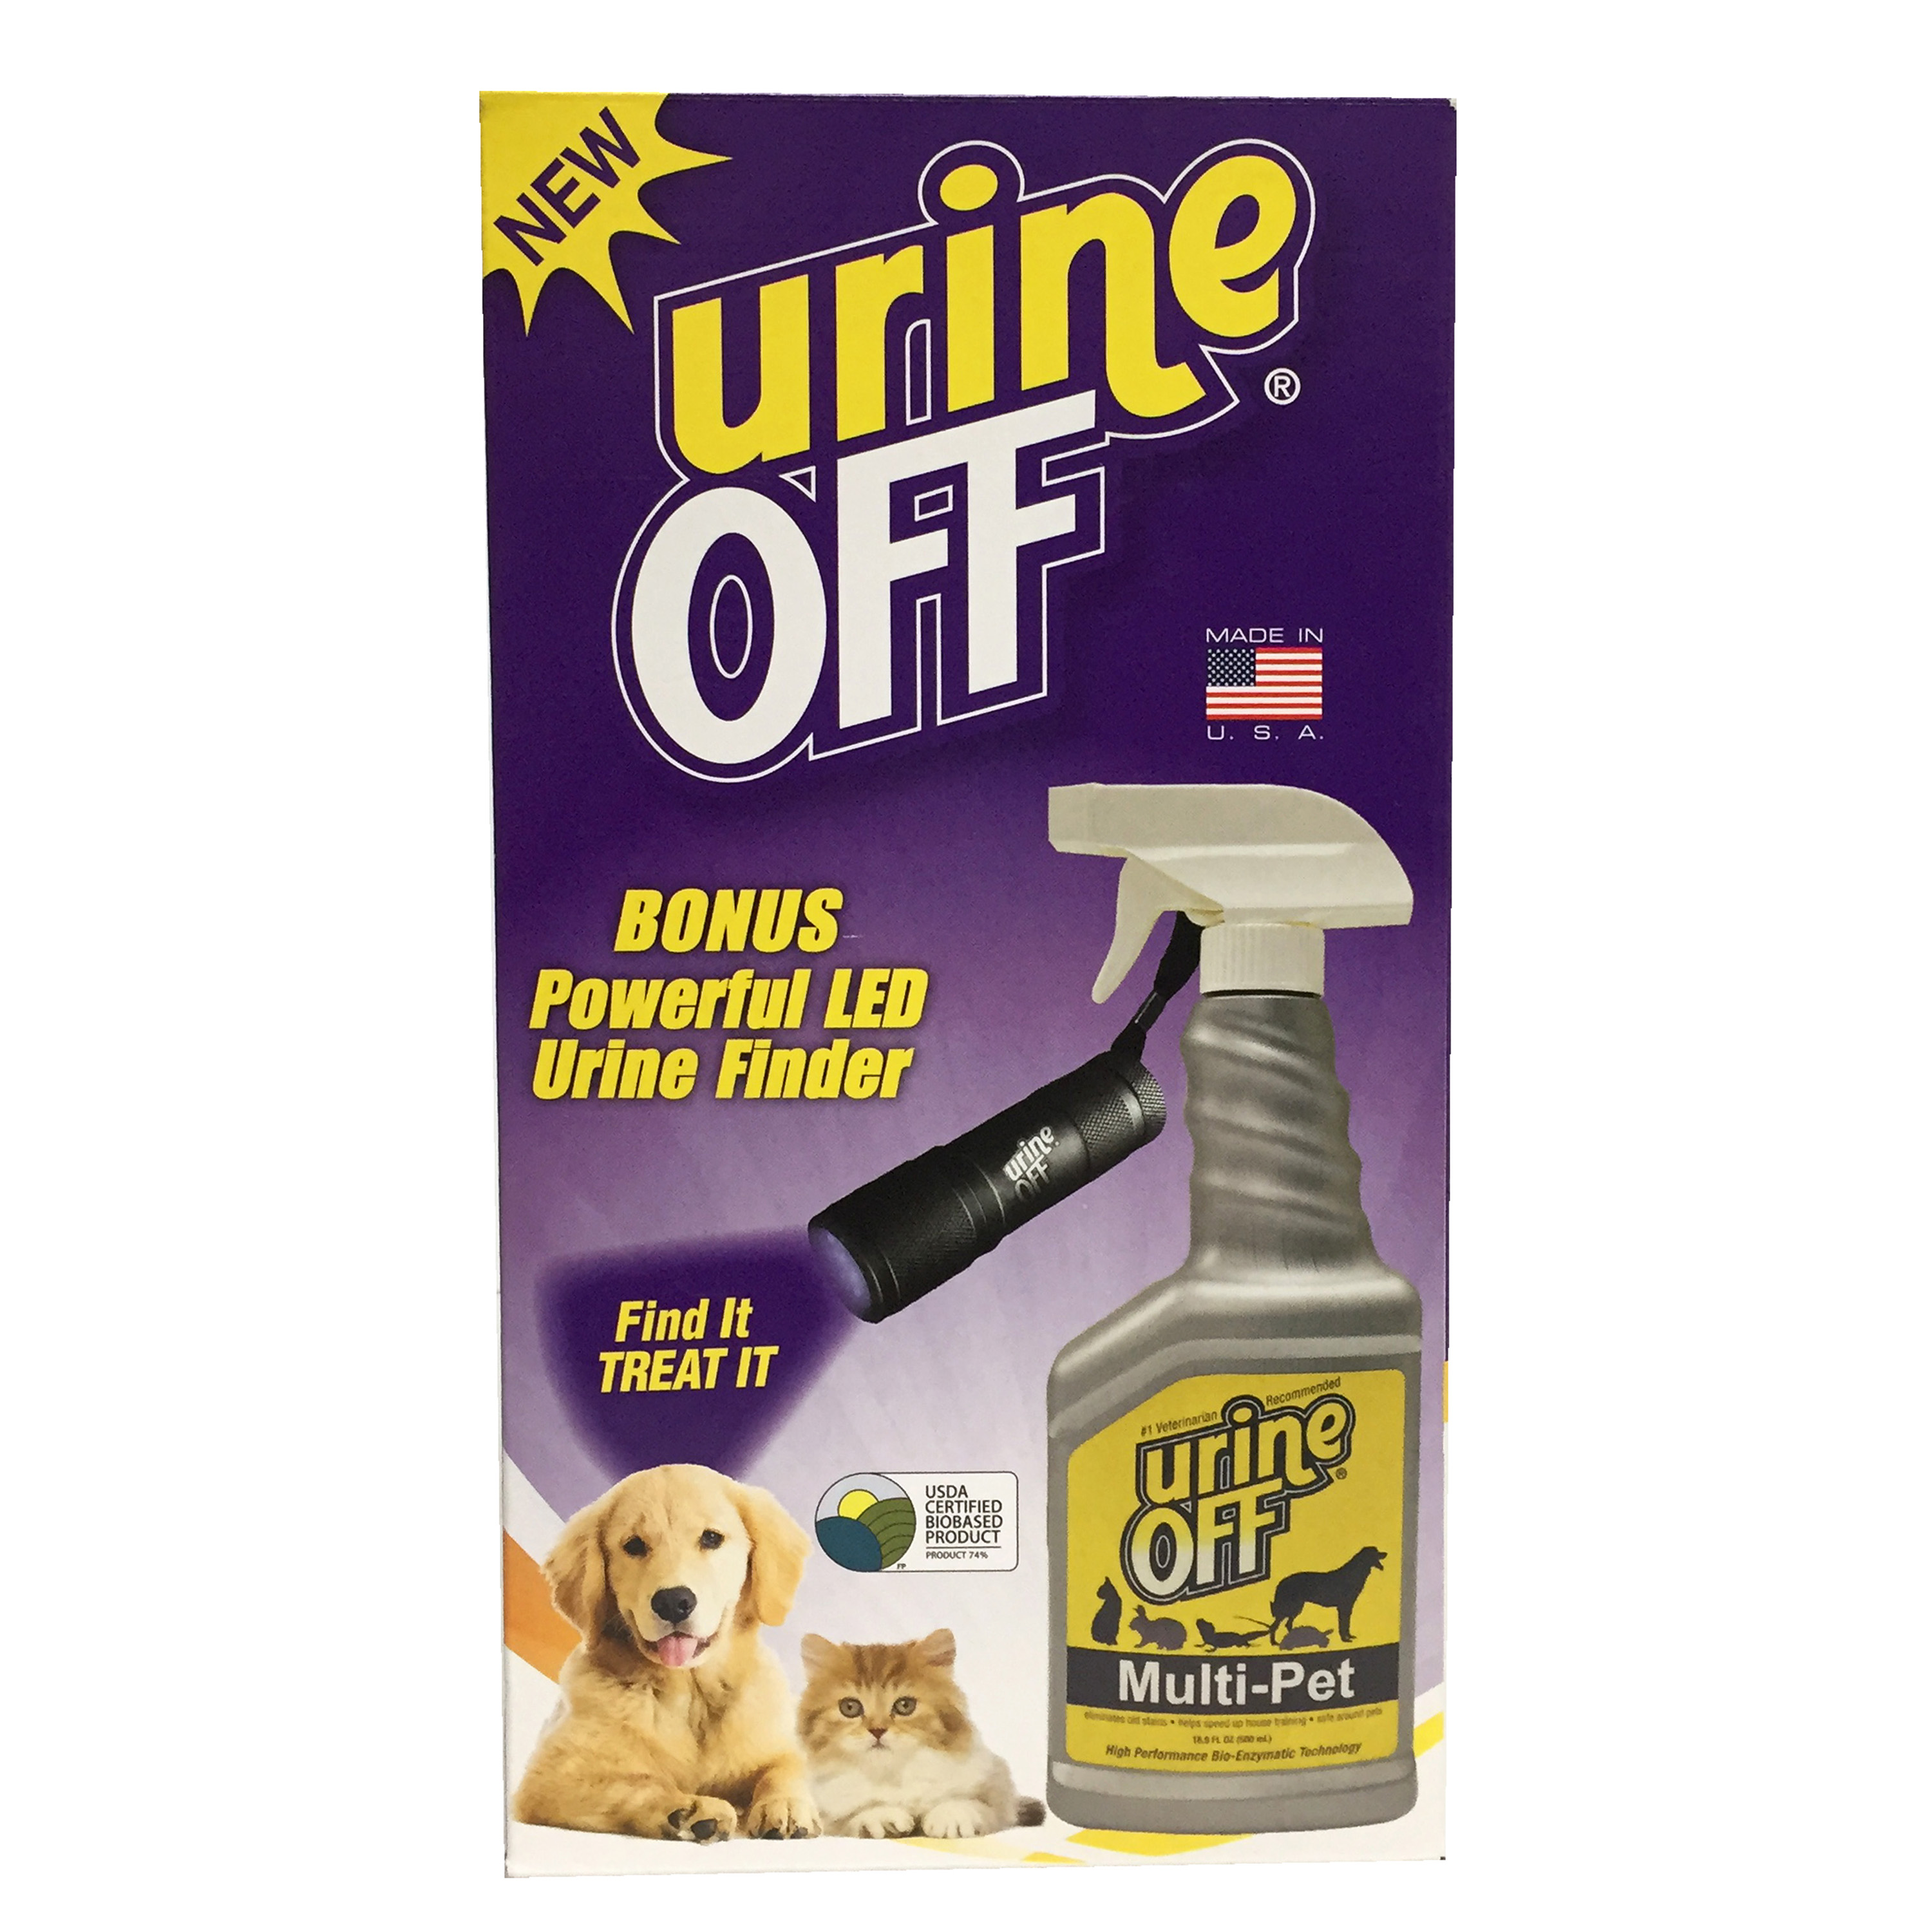 Urine Off Multi-Pet Find It Treat It Kit